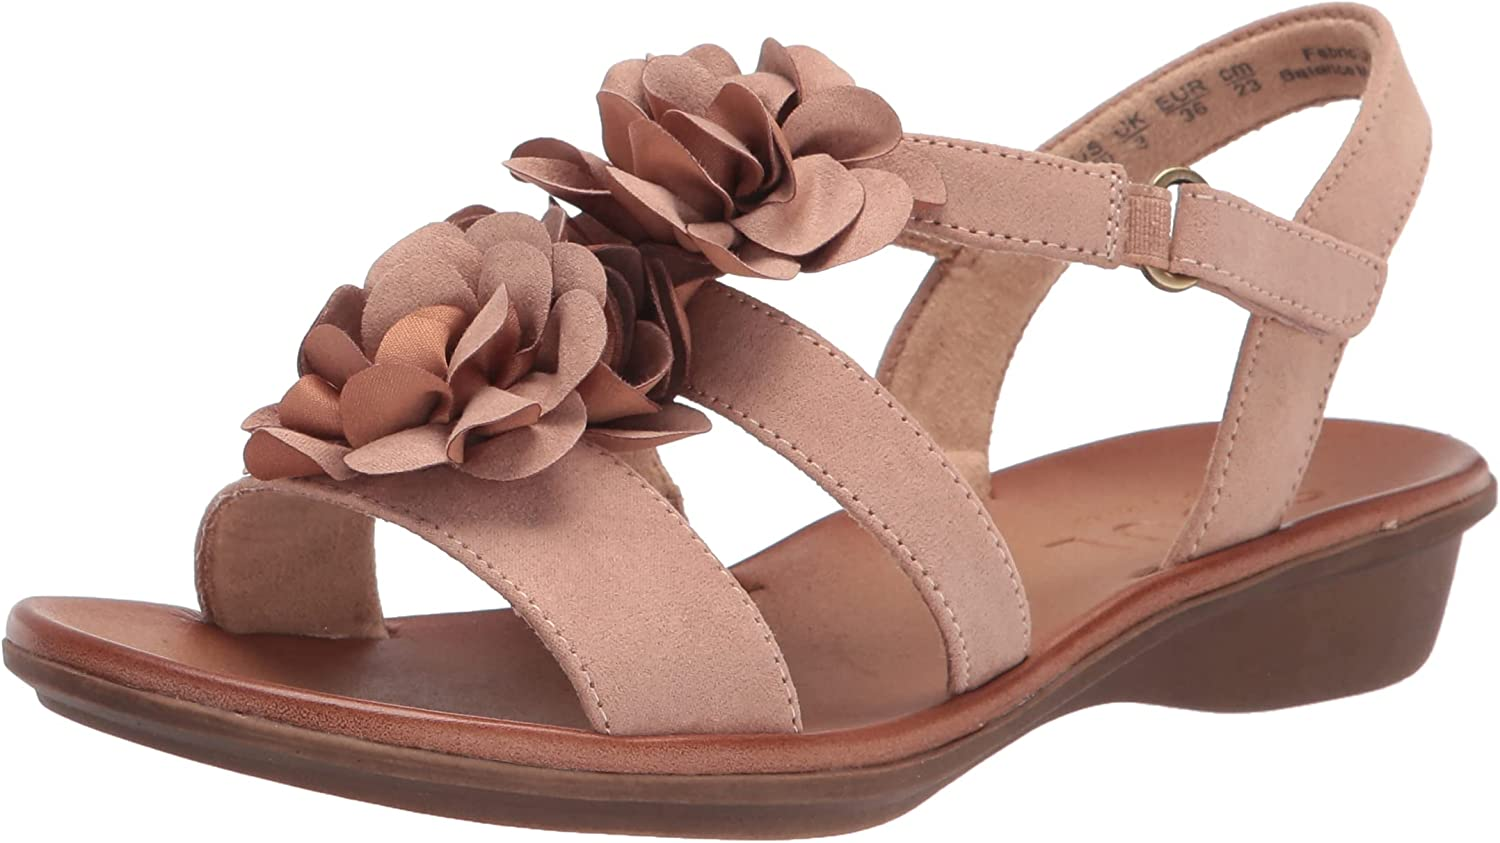 SOUL Naturalizer Women's Free Shipping Max 84% OFF New Sandal Sing